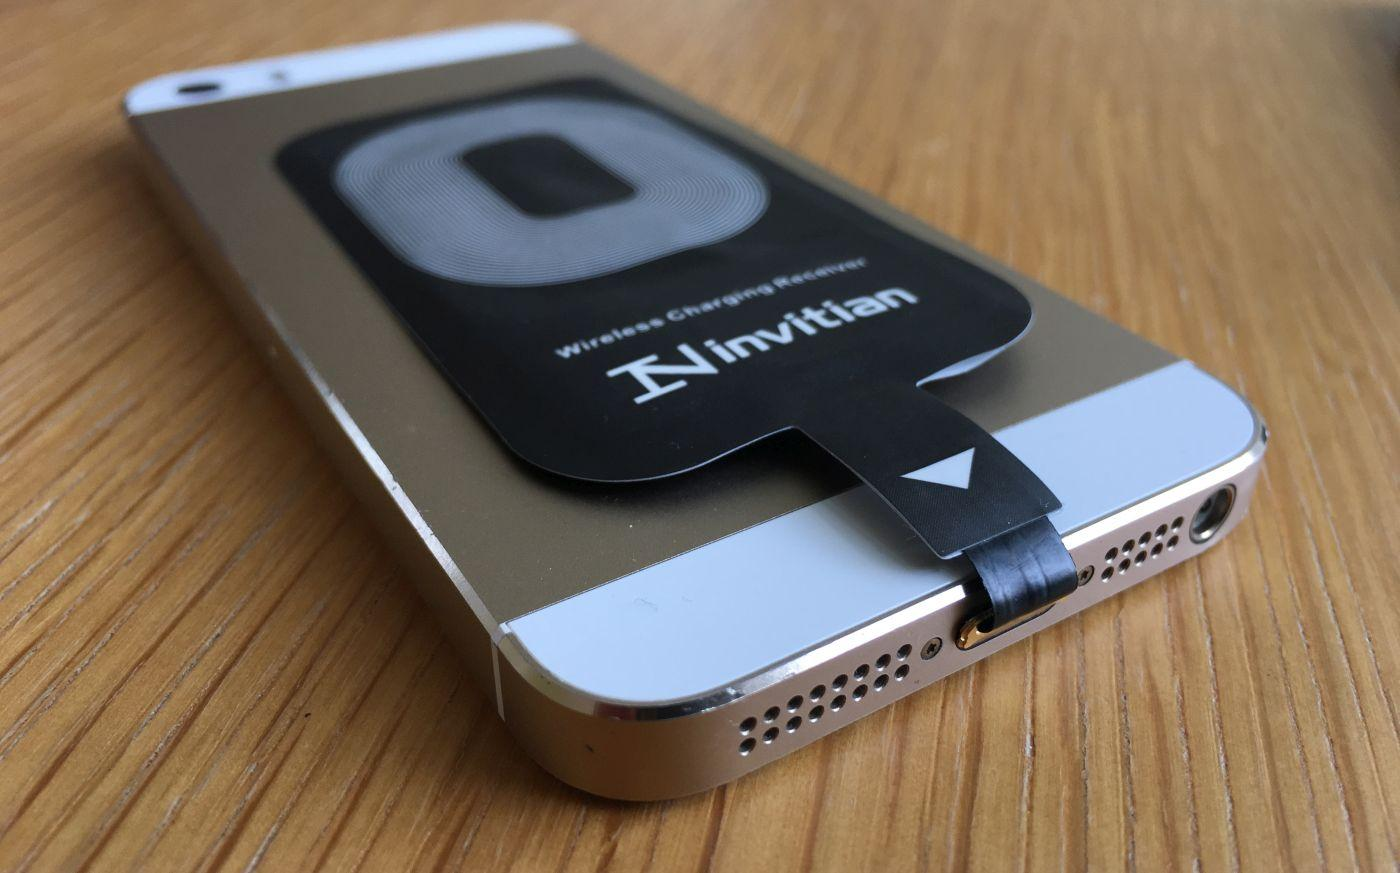 wireless-charging-iphone-5s-invitian-receiver